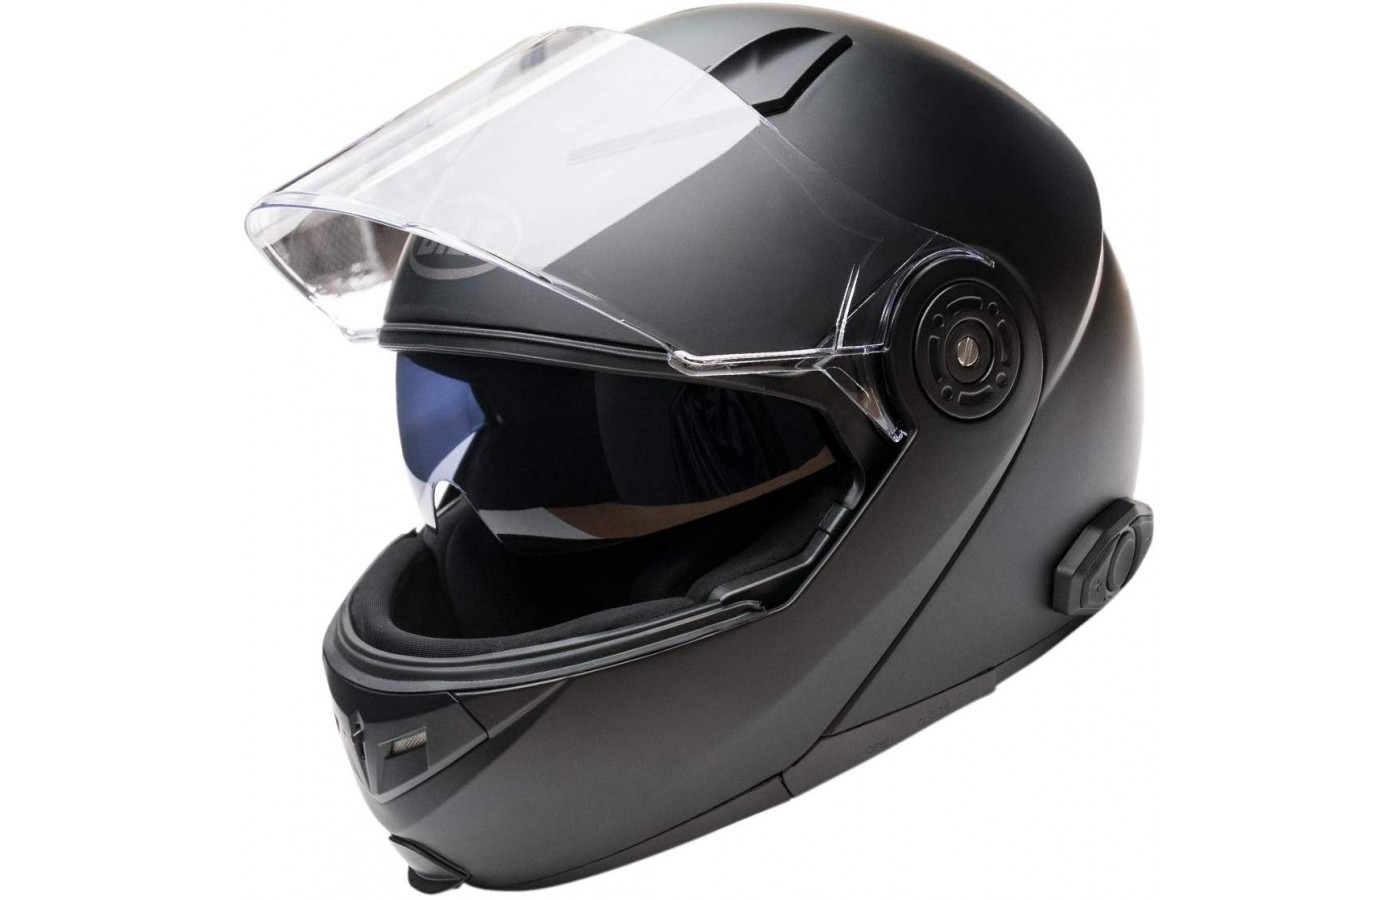 You can open and close the Bilt Techno 2.0's  visor.